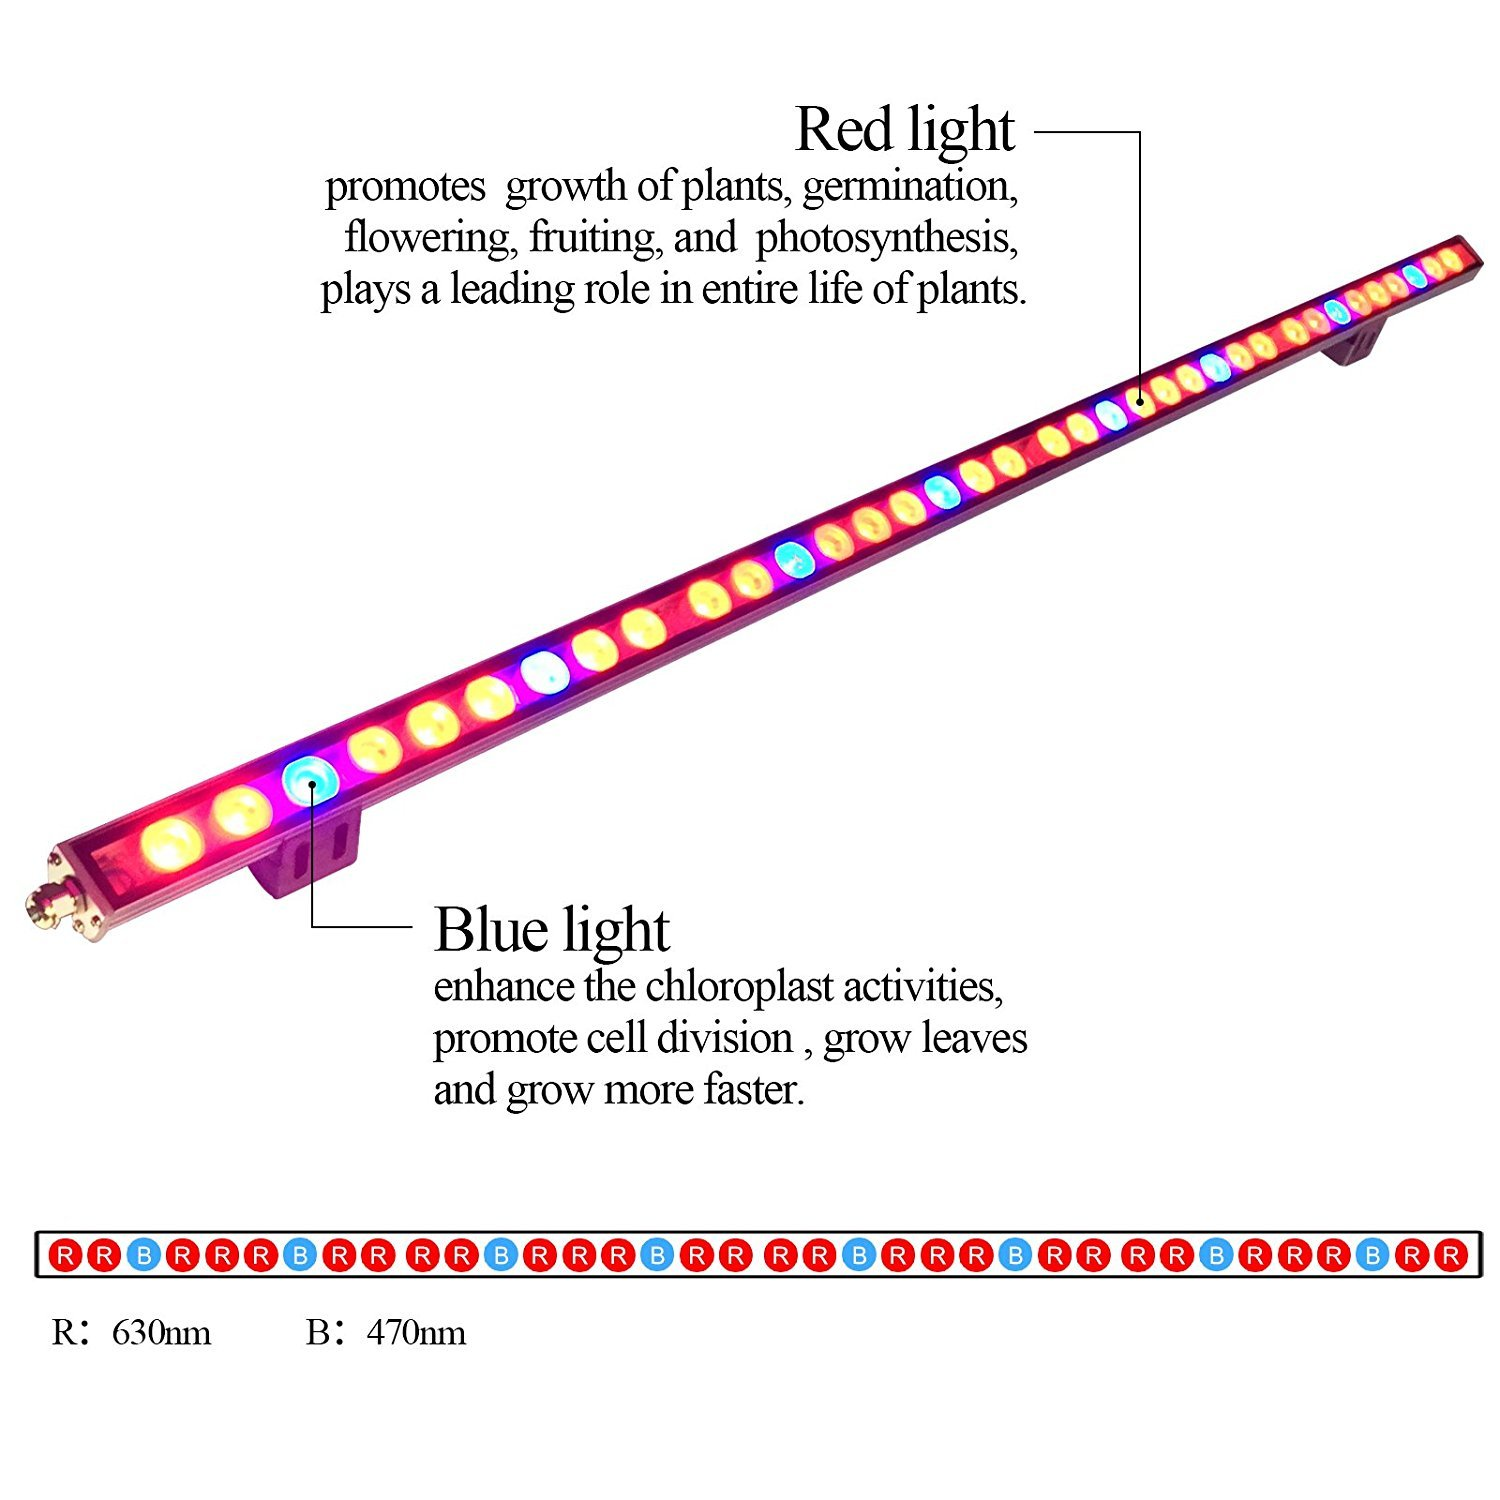 Amazon galaxyhydro led grow plant light waterproof 108w led amazon galaxyhydro led grow plant light waterproof 108w led grow light bar with red blue spectrum for hydroponic indoor plants growing garden parisarafo Choice Image